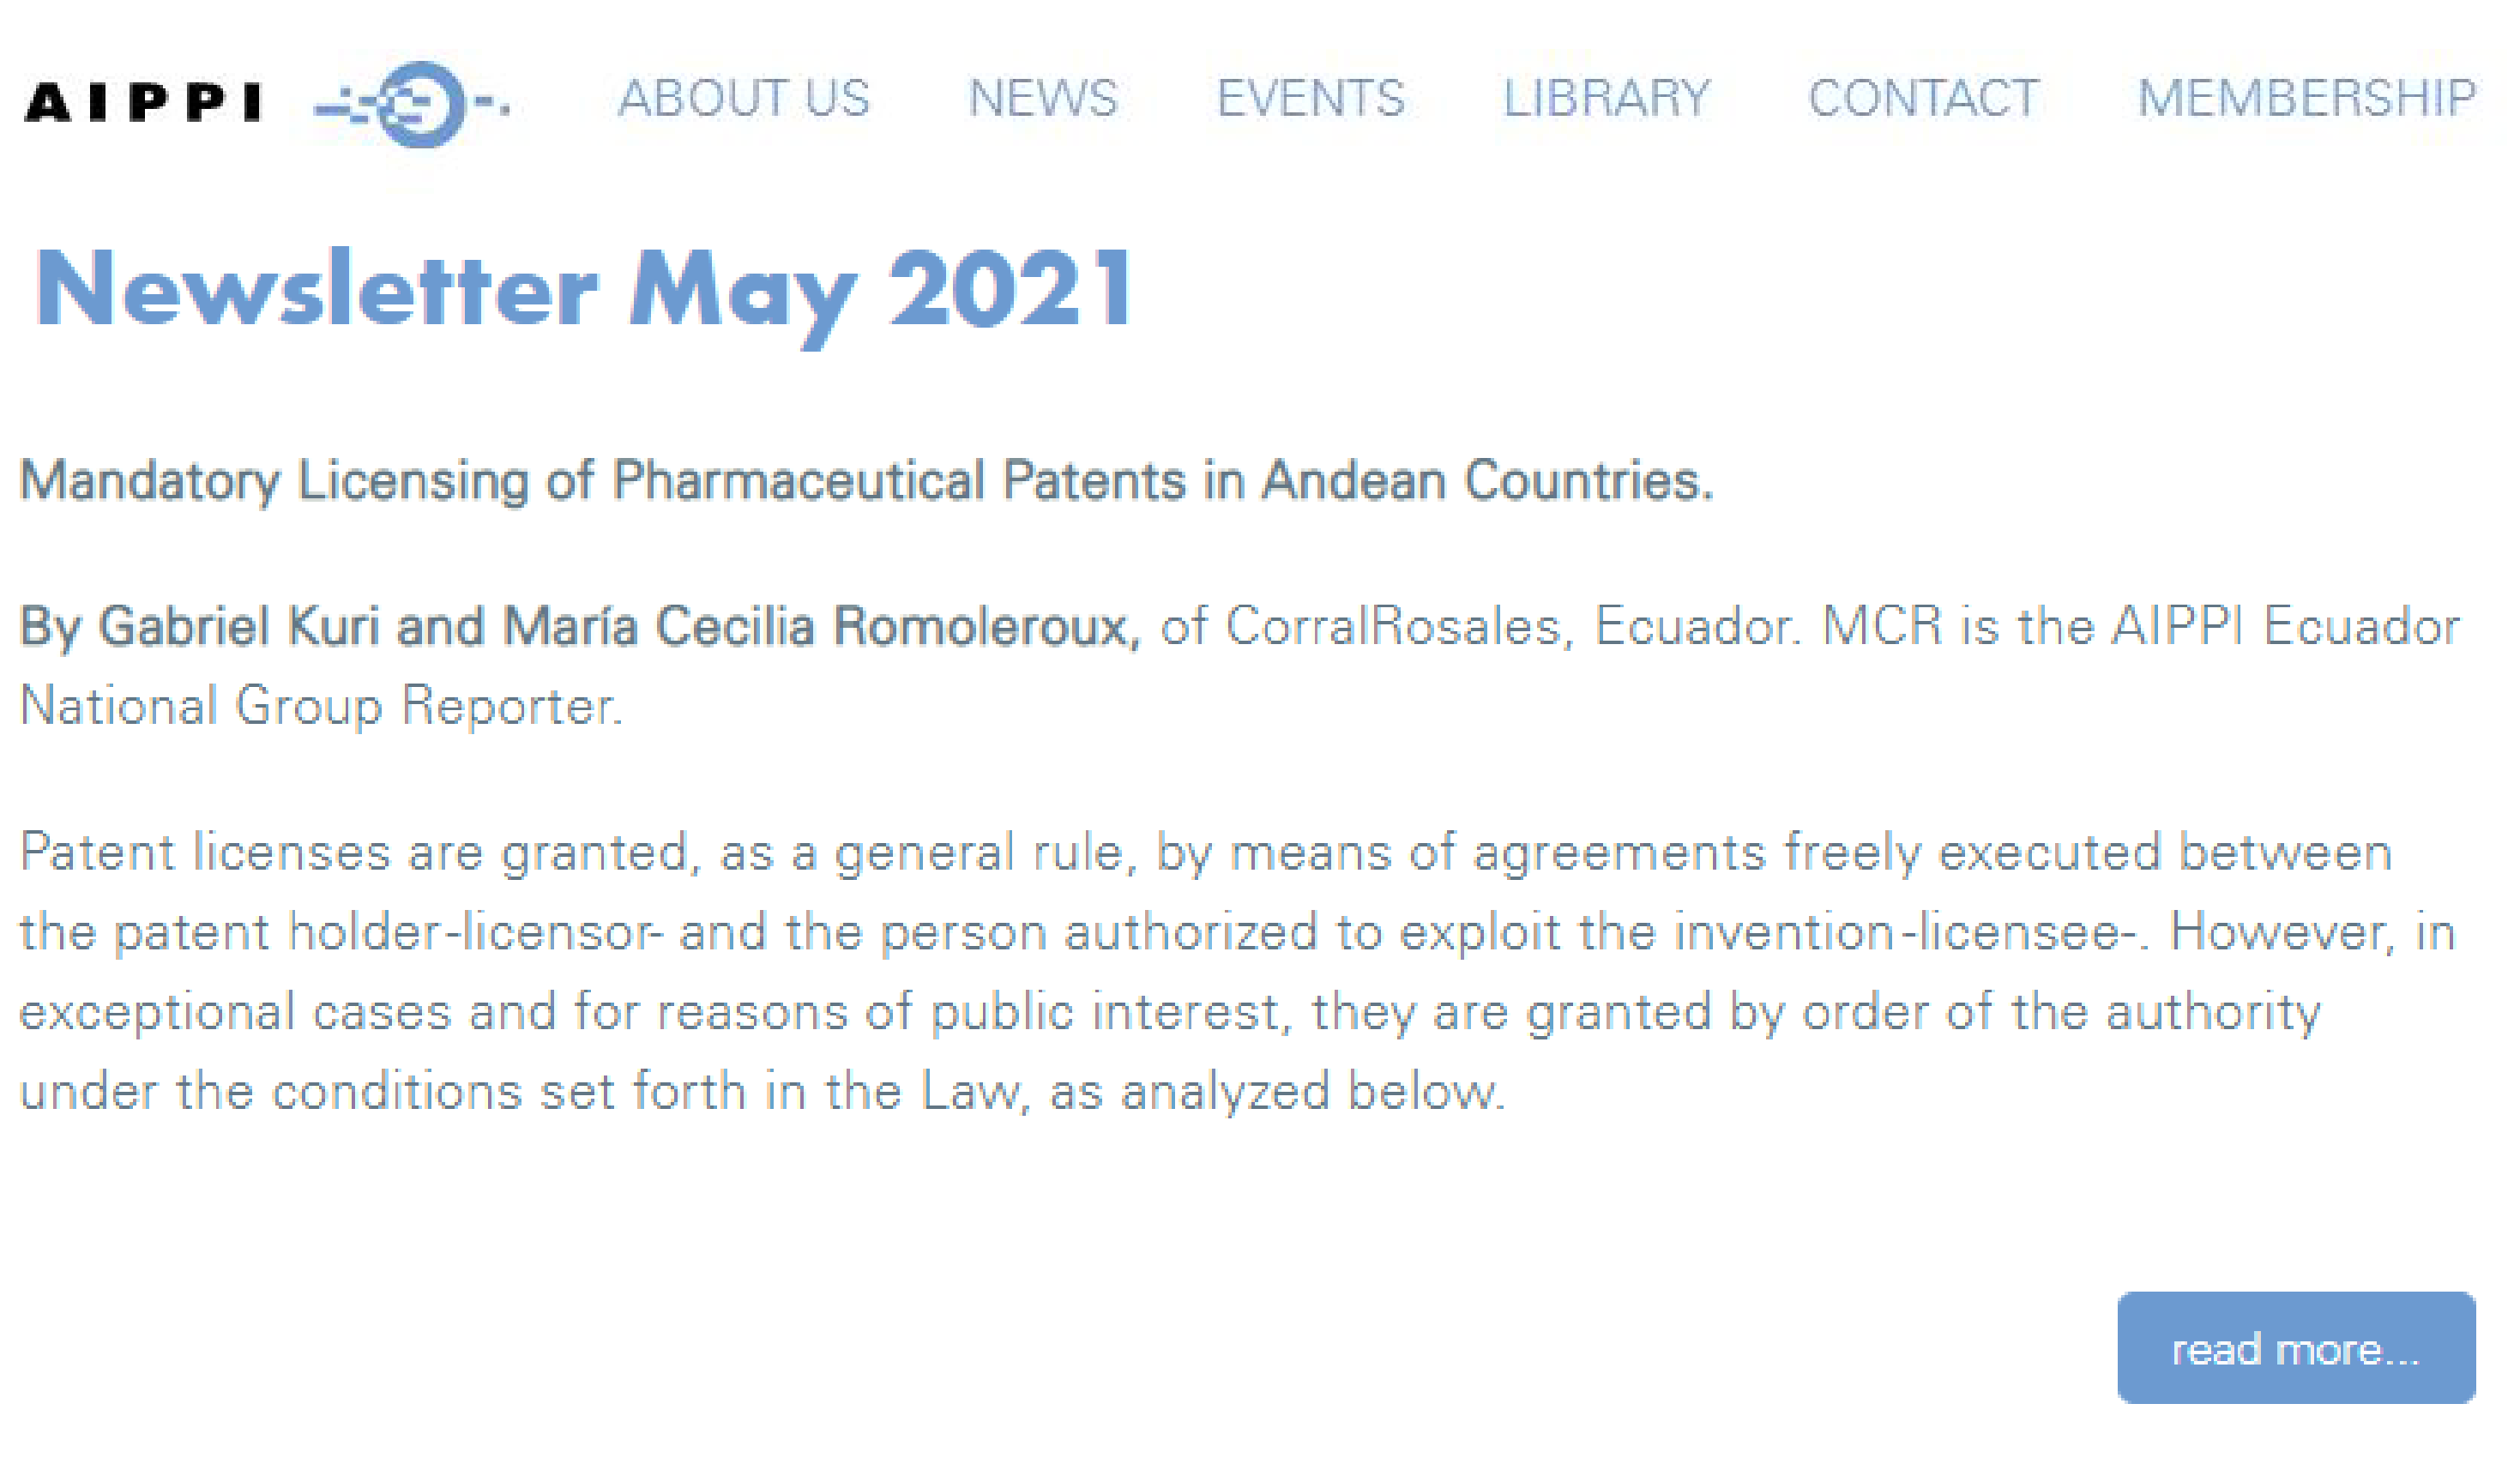 AIPPI - Mandatory licensing of pharmaceutical patents in Andean countries - CorralRosales - Lawyers Ecuador